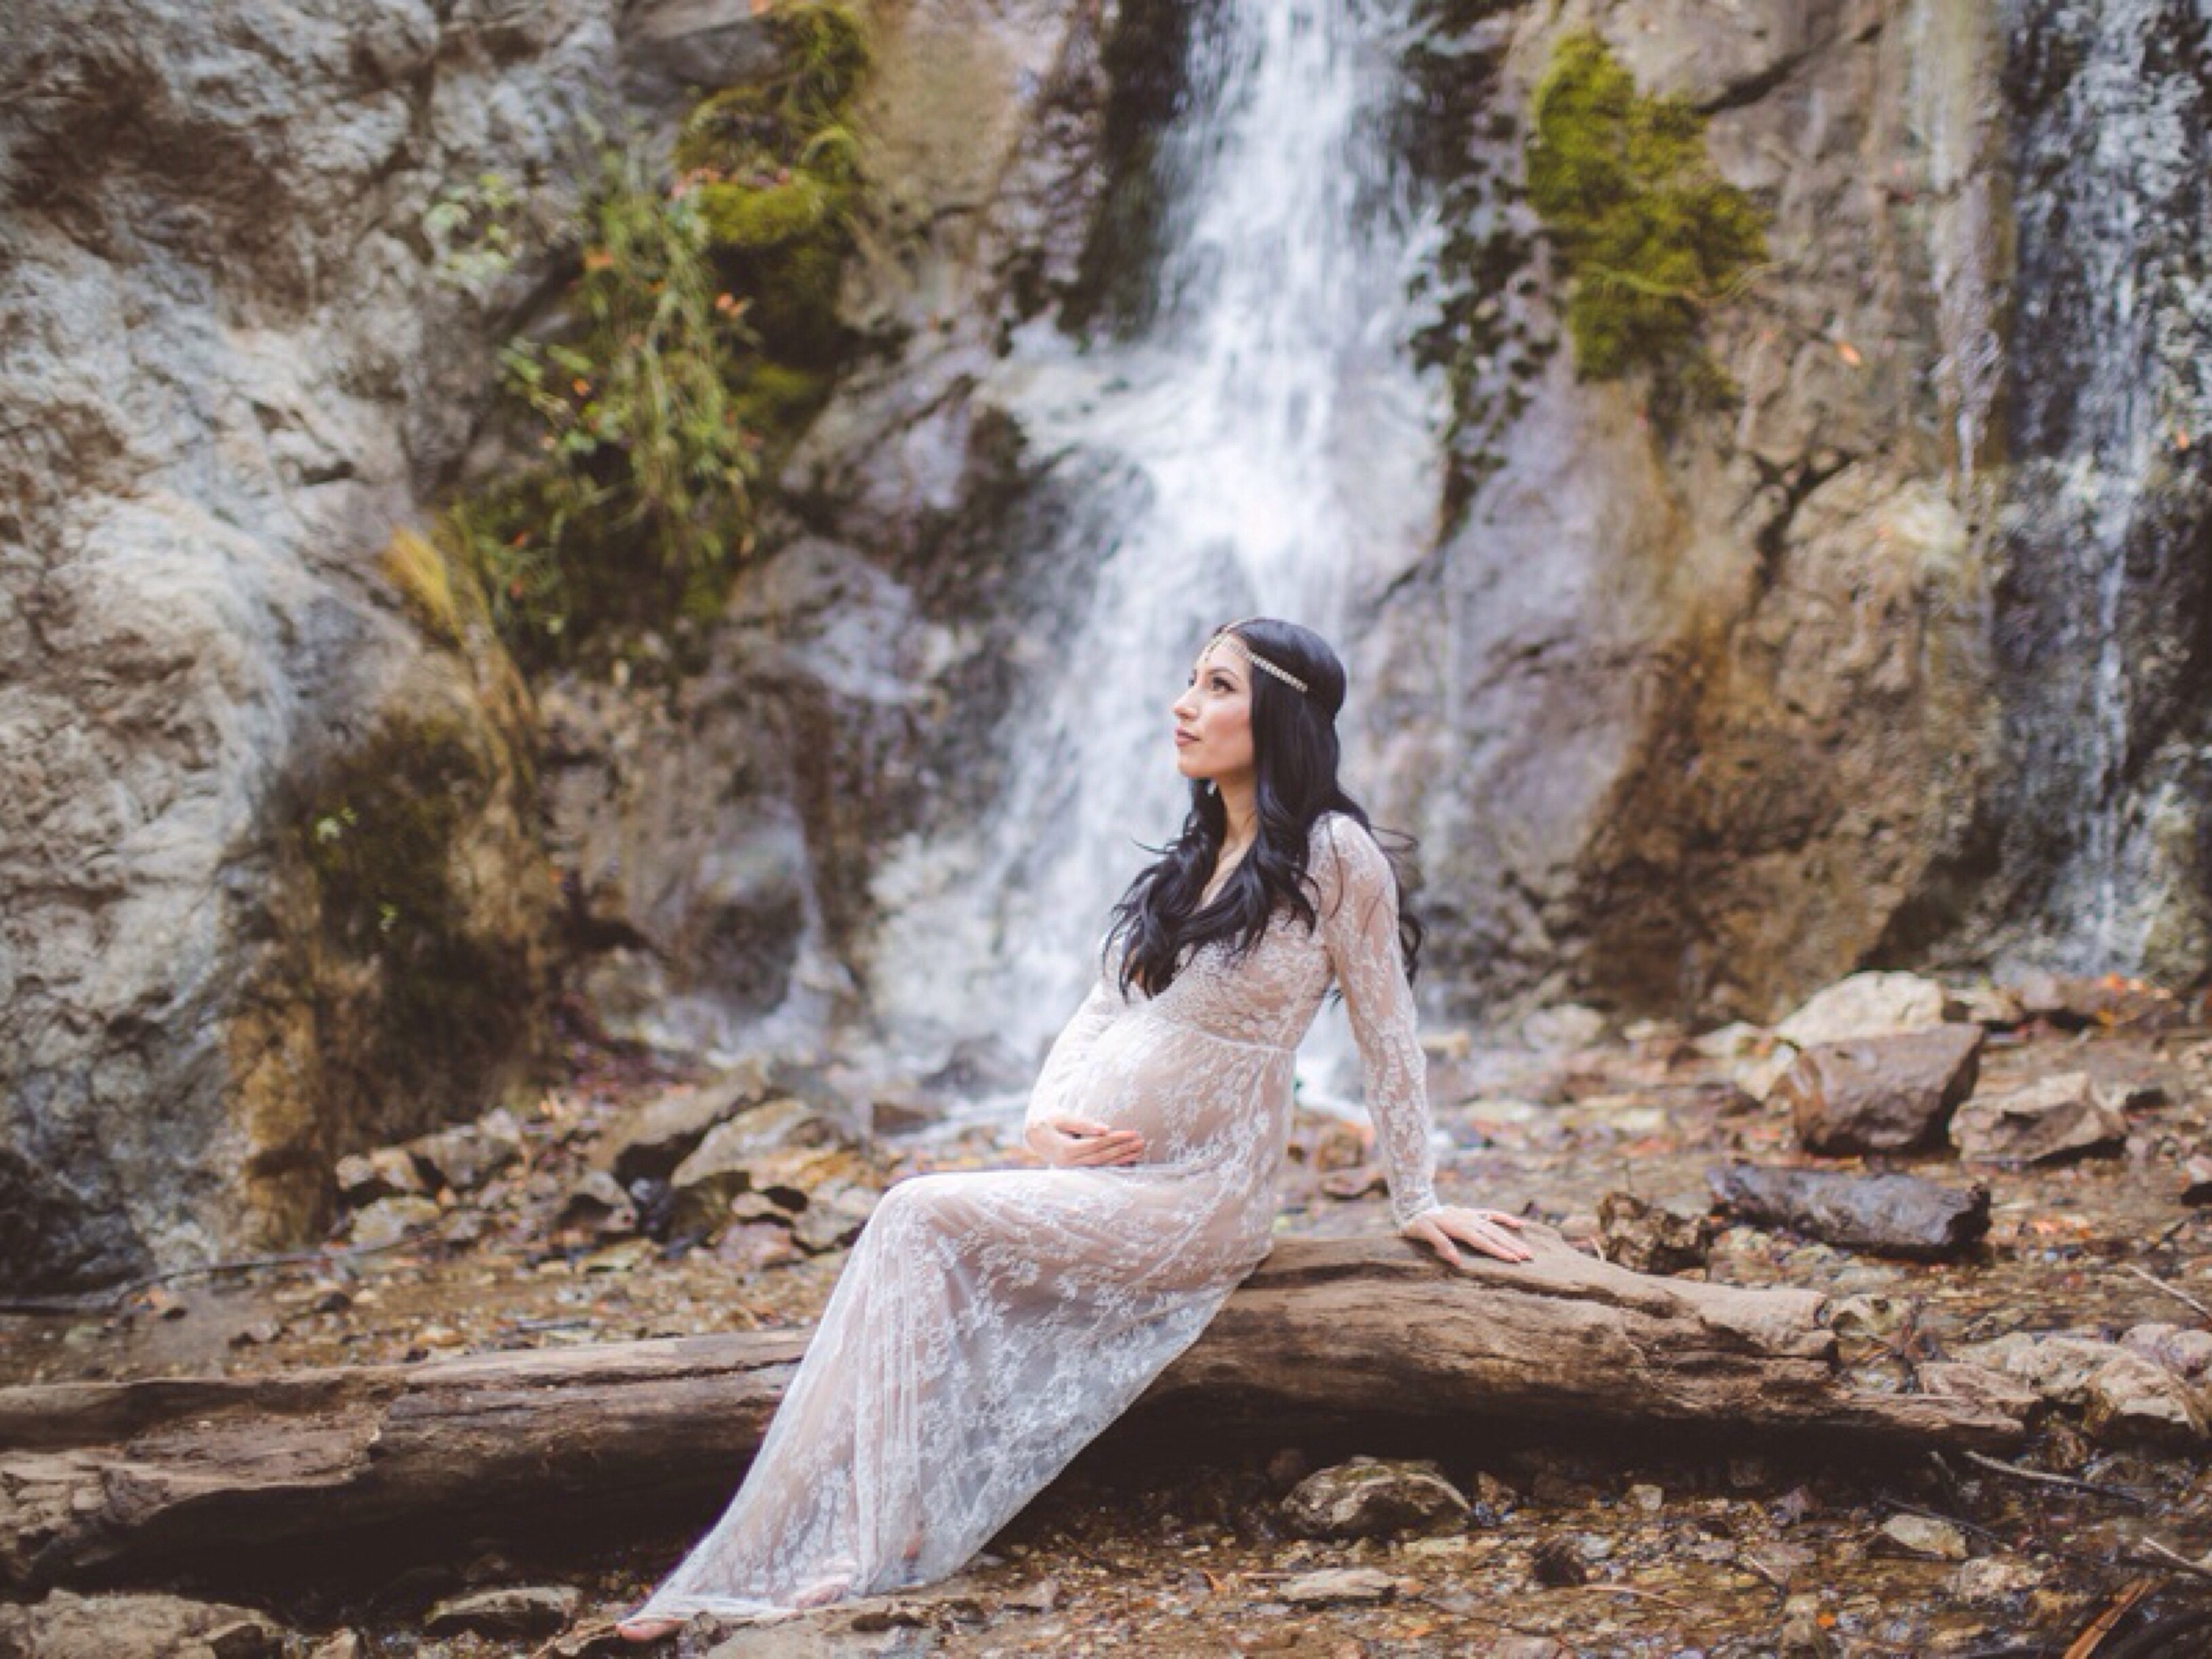 Big Sur Waterfall Maternity Session: Photography by Vanessa Hicks Photography via Heather Renee Celebrations